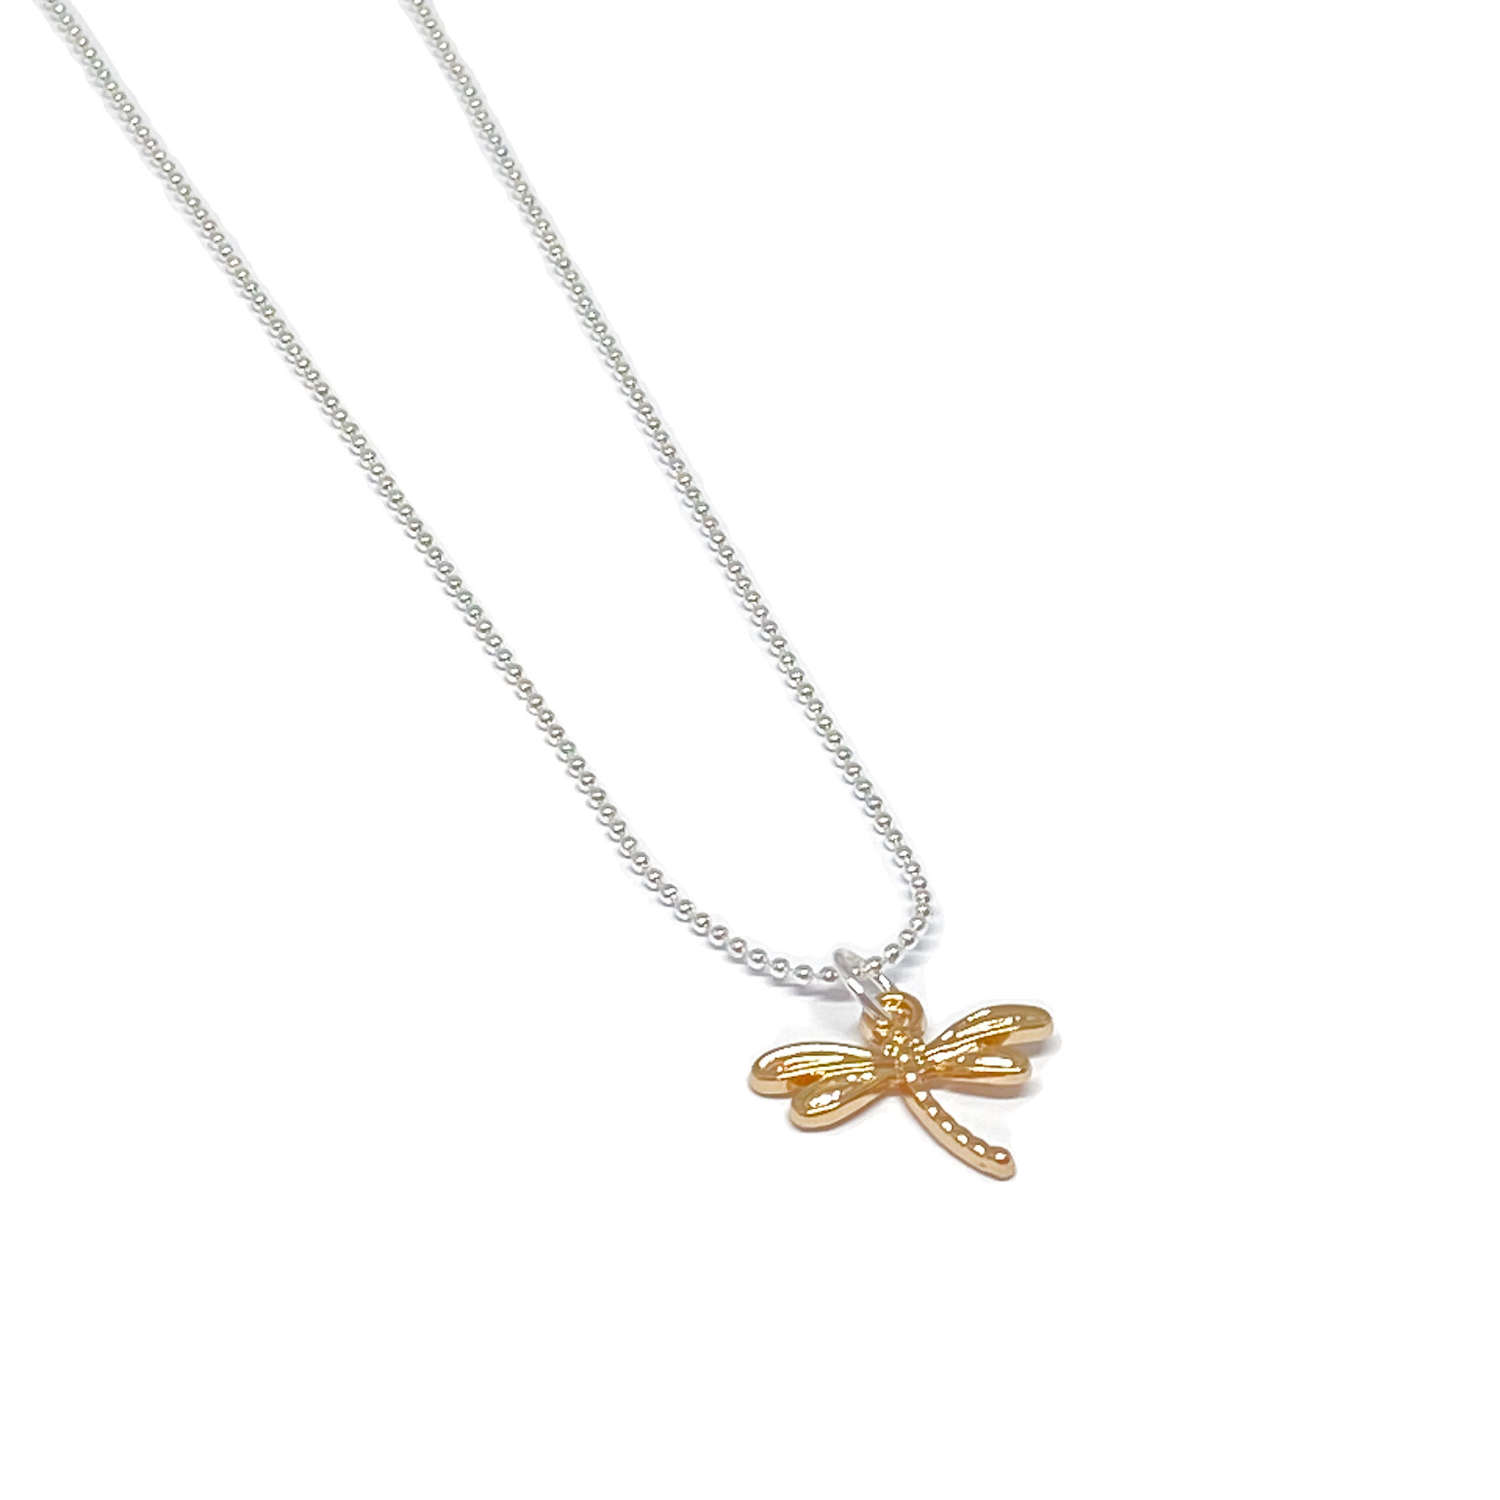 Daisy Dragonfly Necklace - Gold